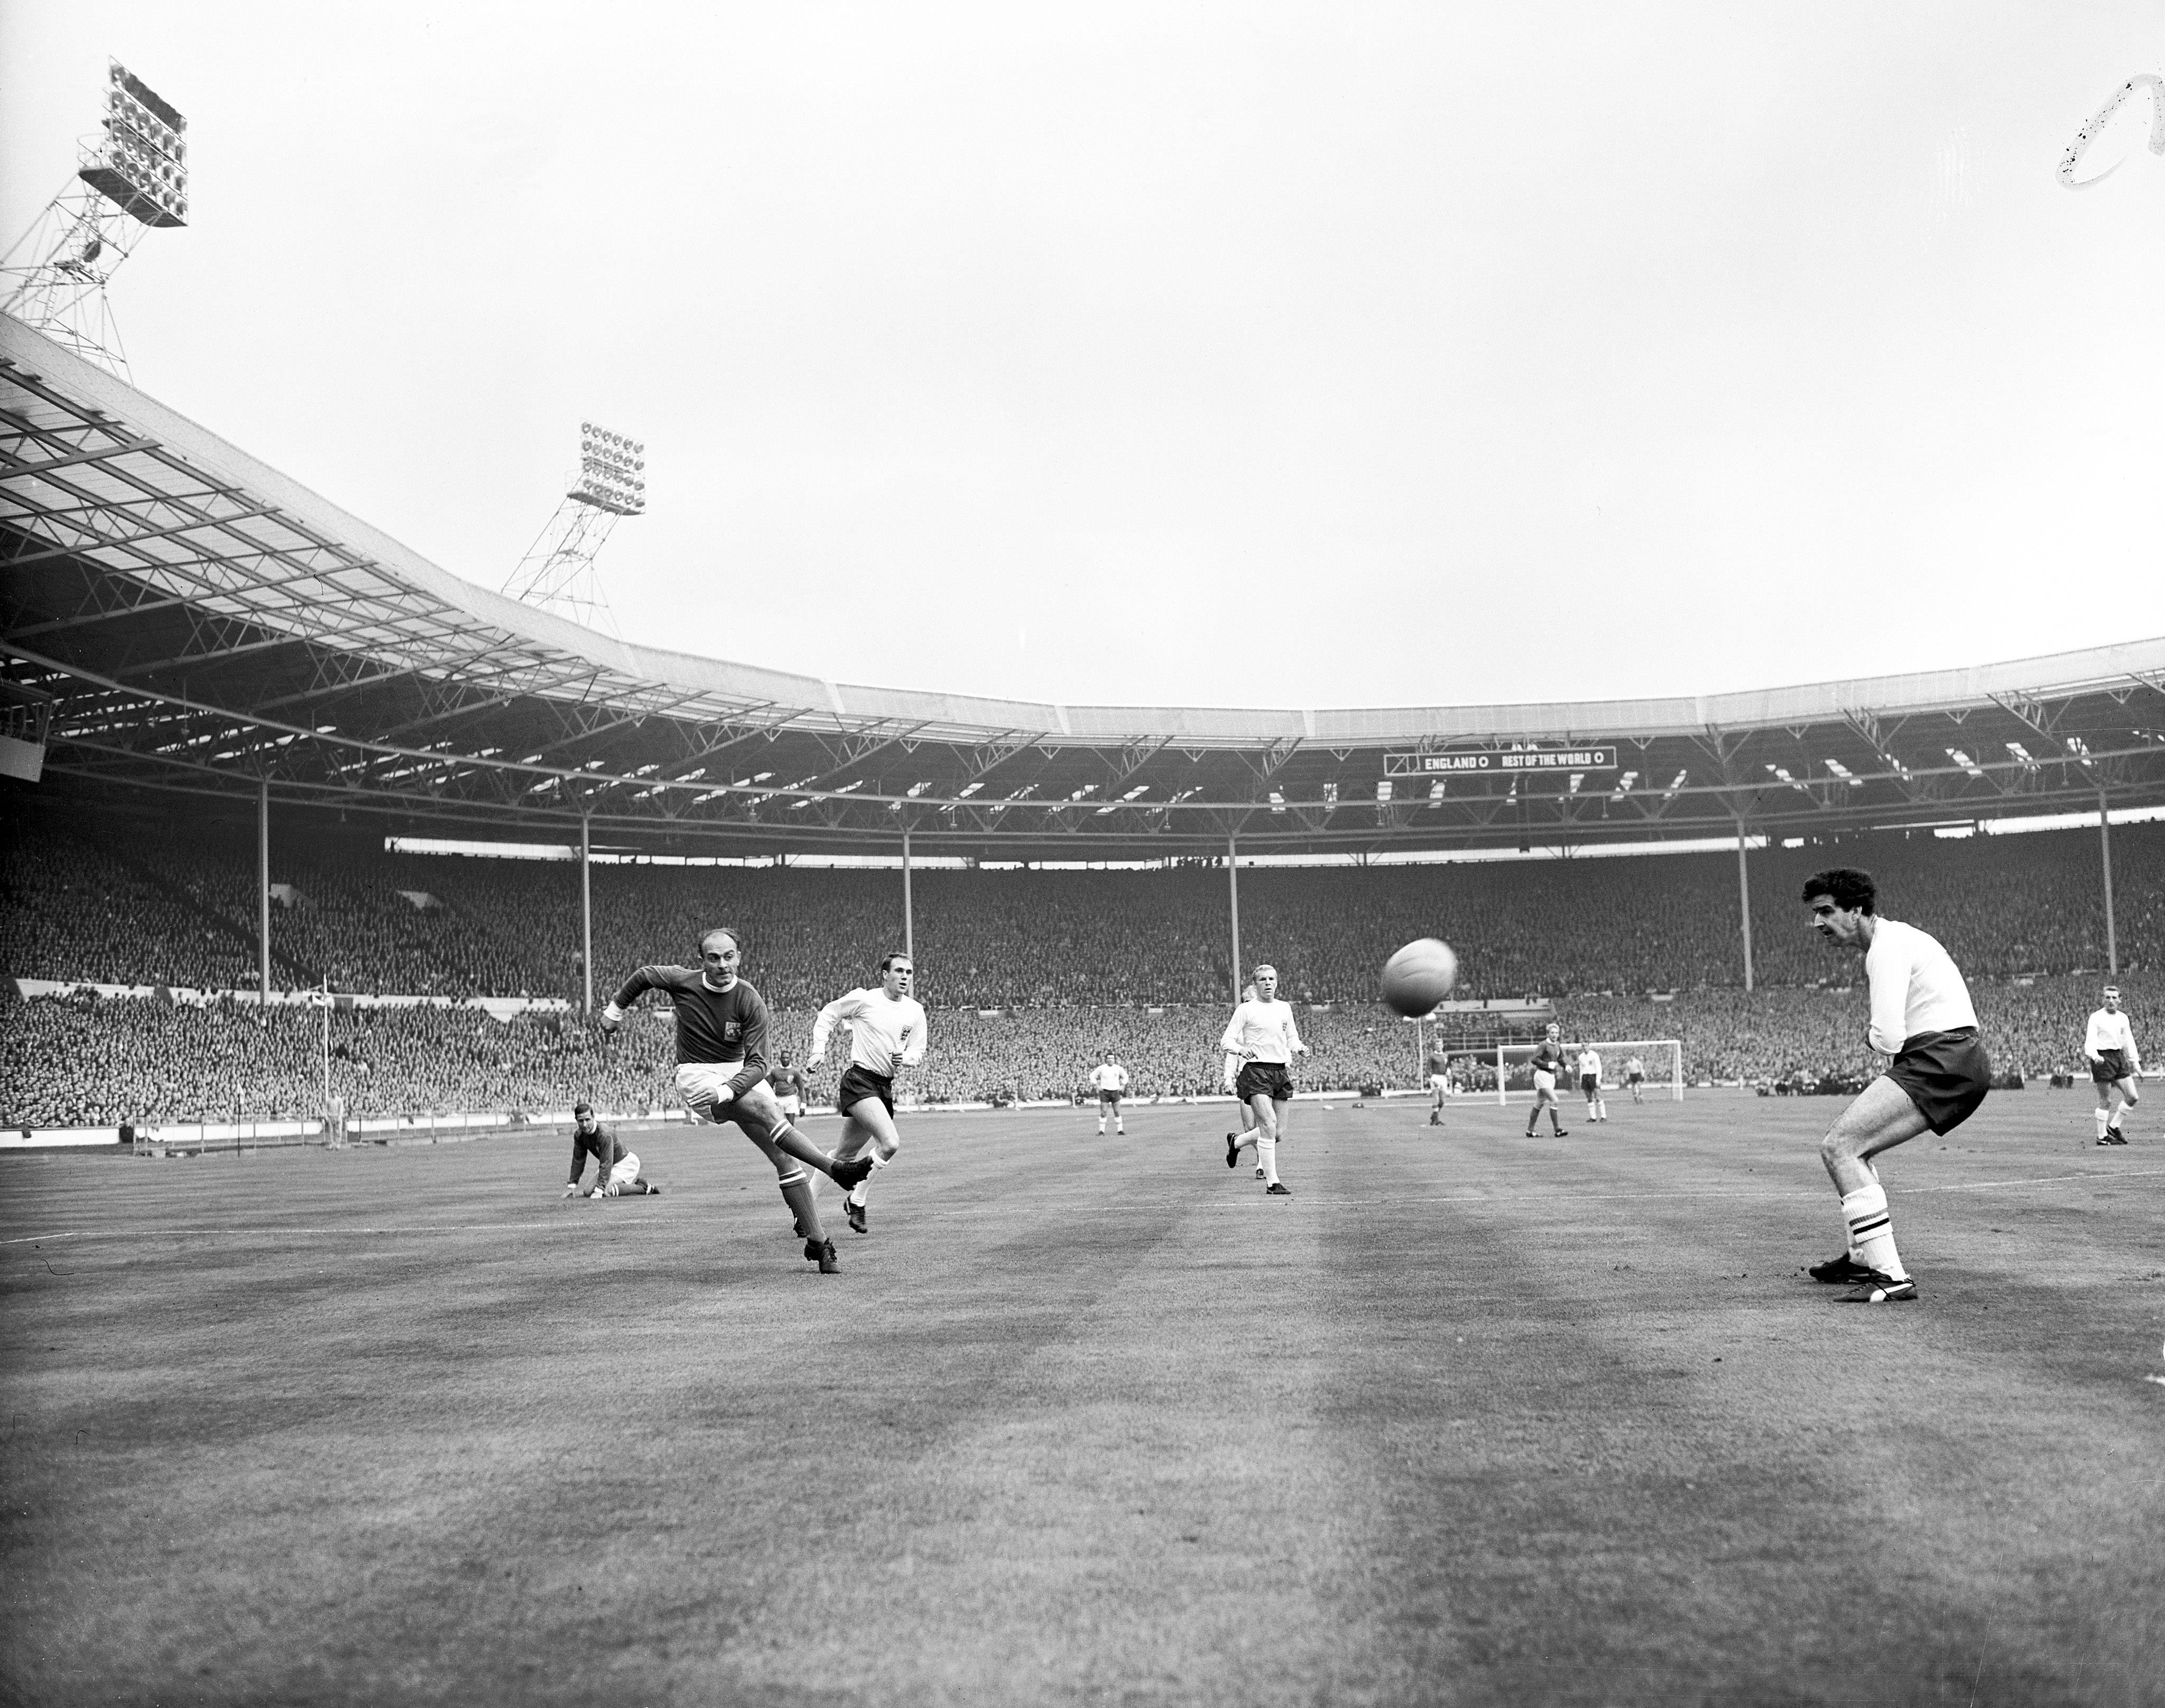 Soccer - FA 100th Anniversary Match - England v Rest of the World Rest of the World's Alfredo di Stefano (l) fires a shot at goal, watched by England's Maurice Norman (r), Bobby Moore (second r) and Ray Wilson (second l) Date: 23/10/1963